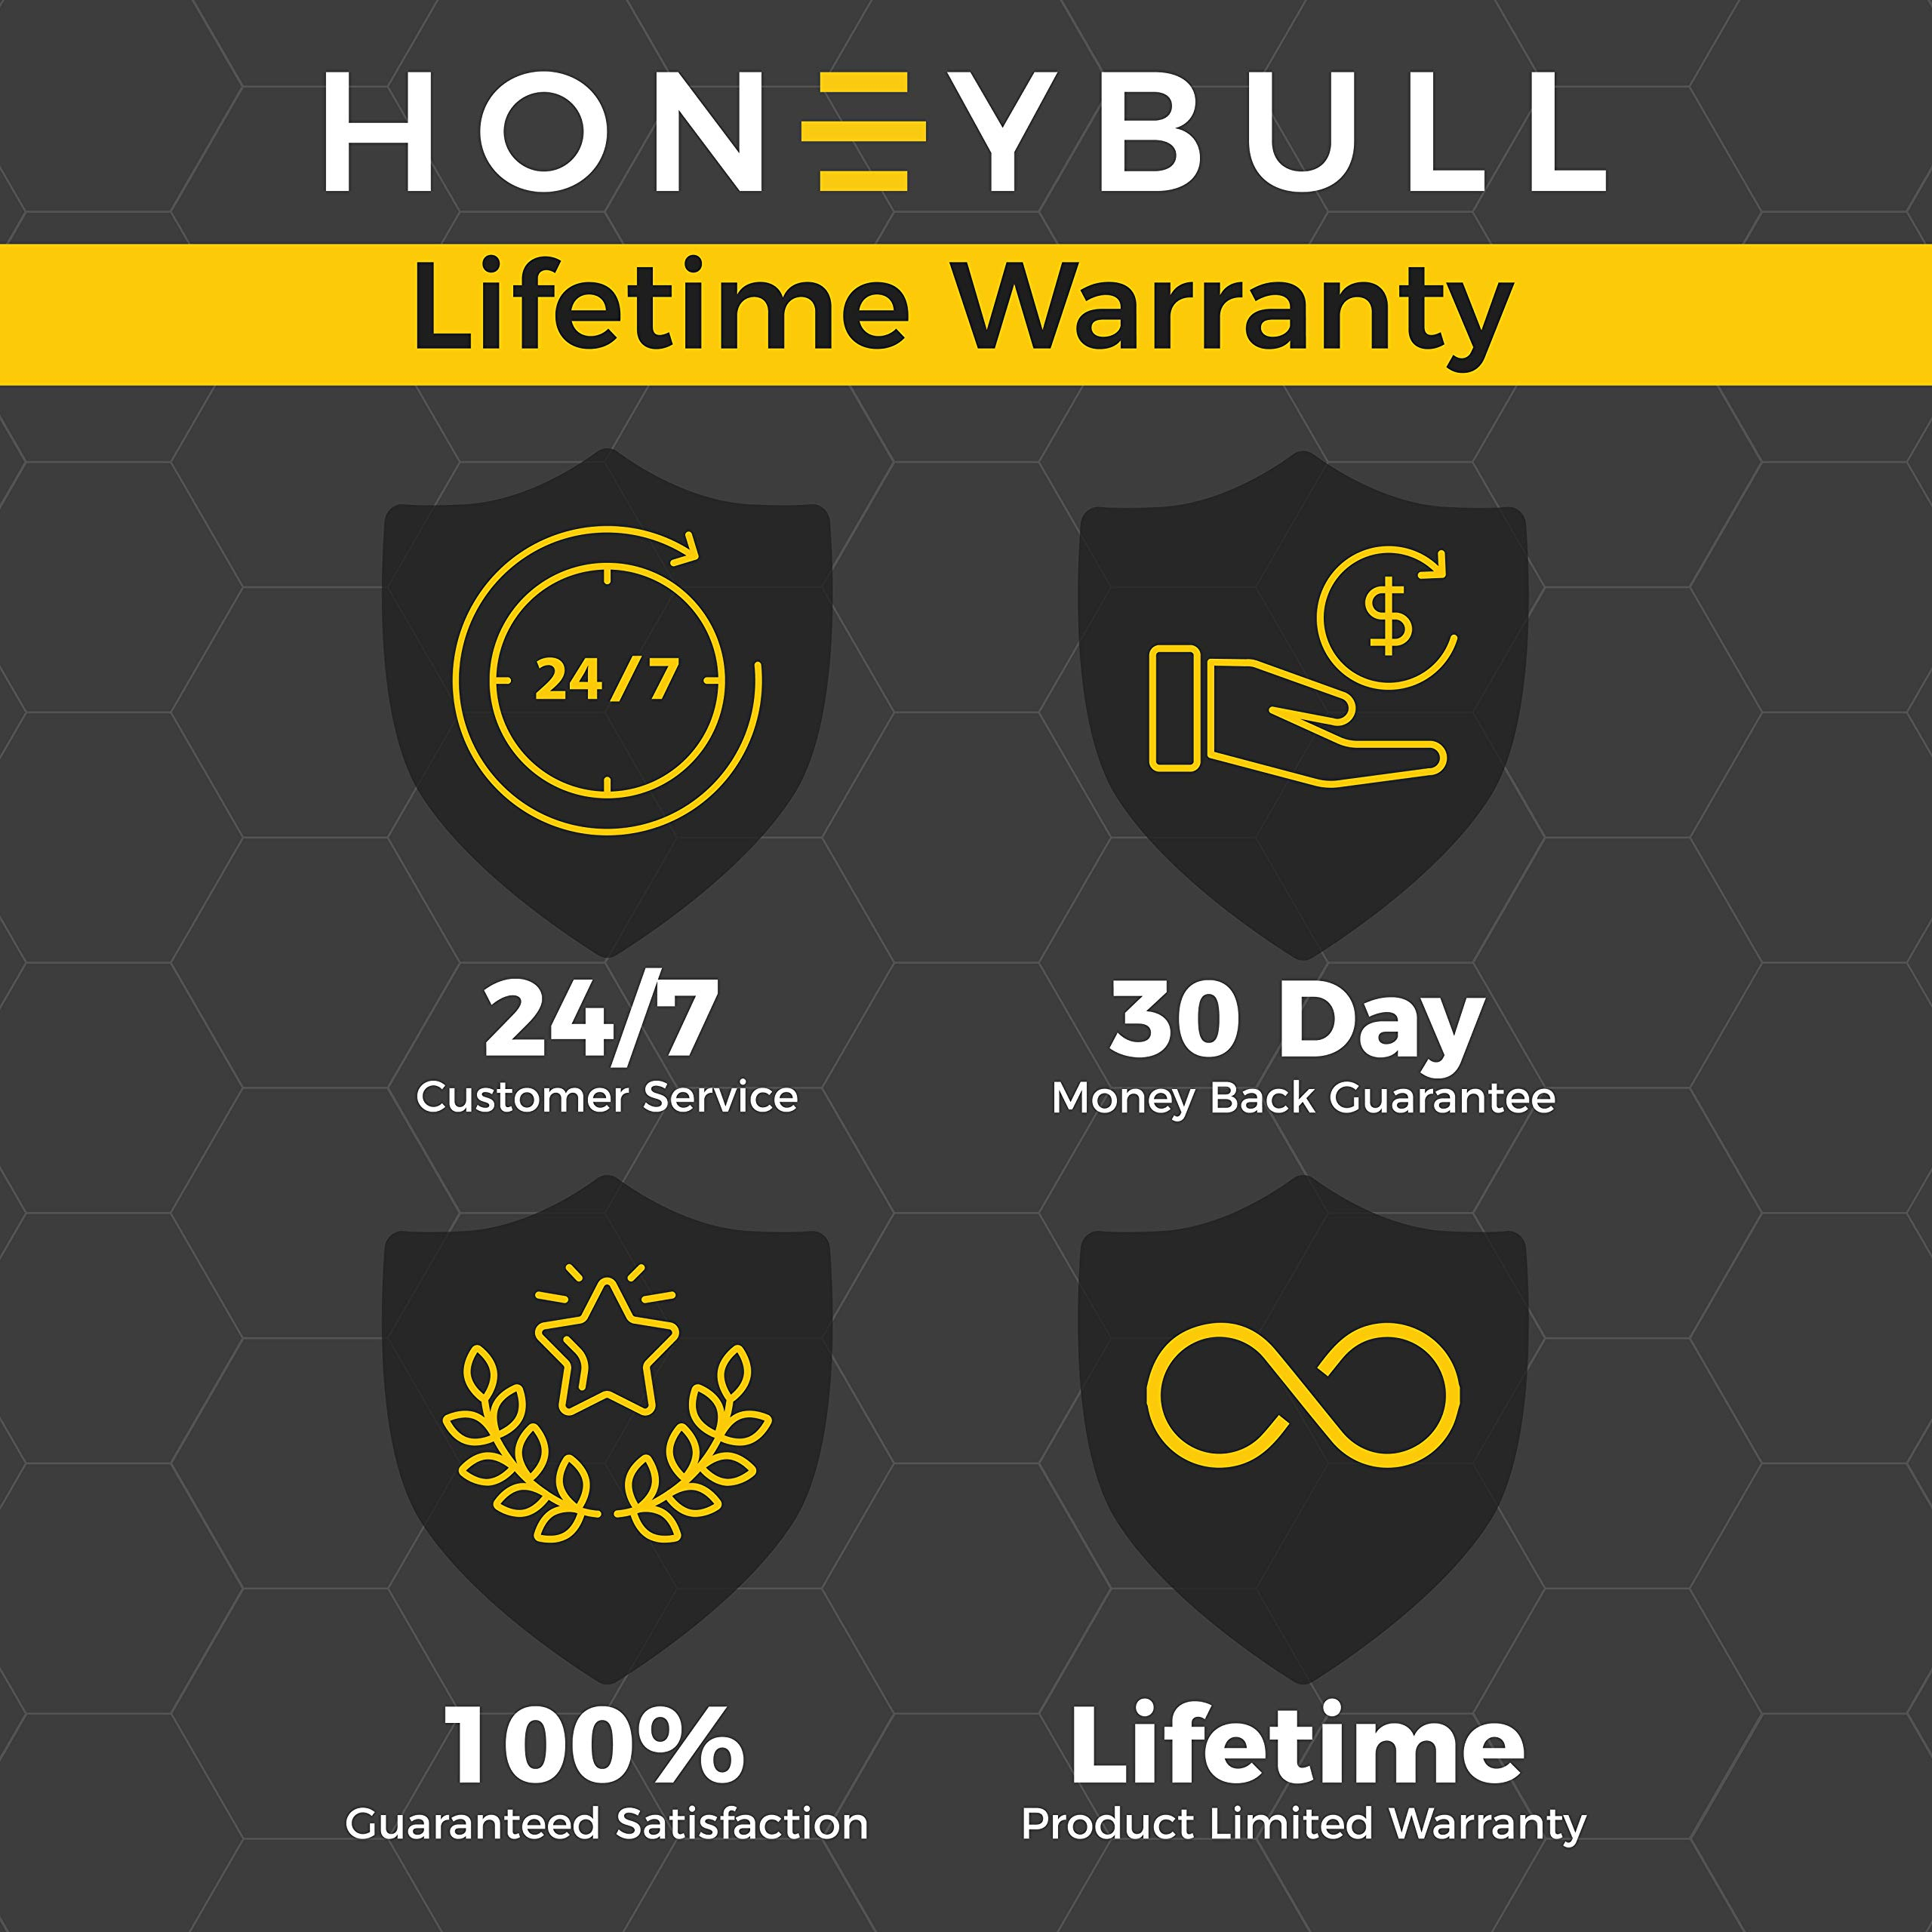 HONEYBULL Knee Pads for Work with Foam Pads - Universal Fit (1 Pair) by HONEYBULL (Image #7)